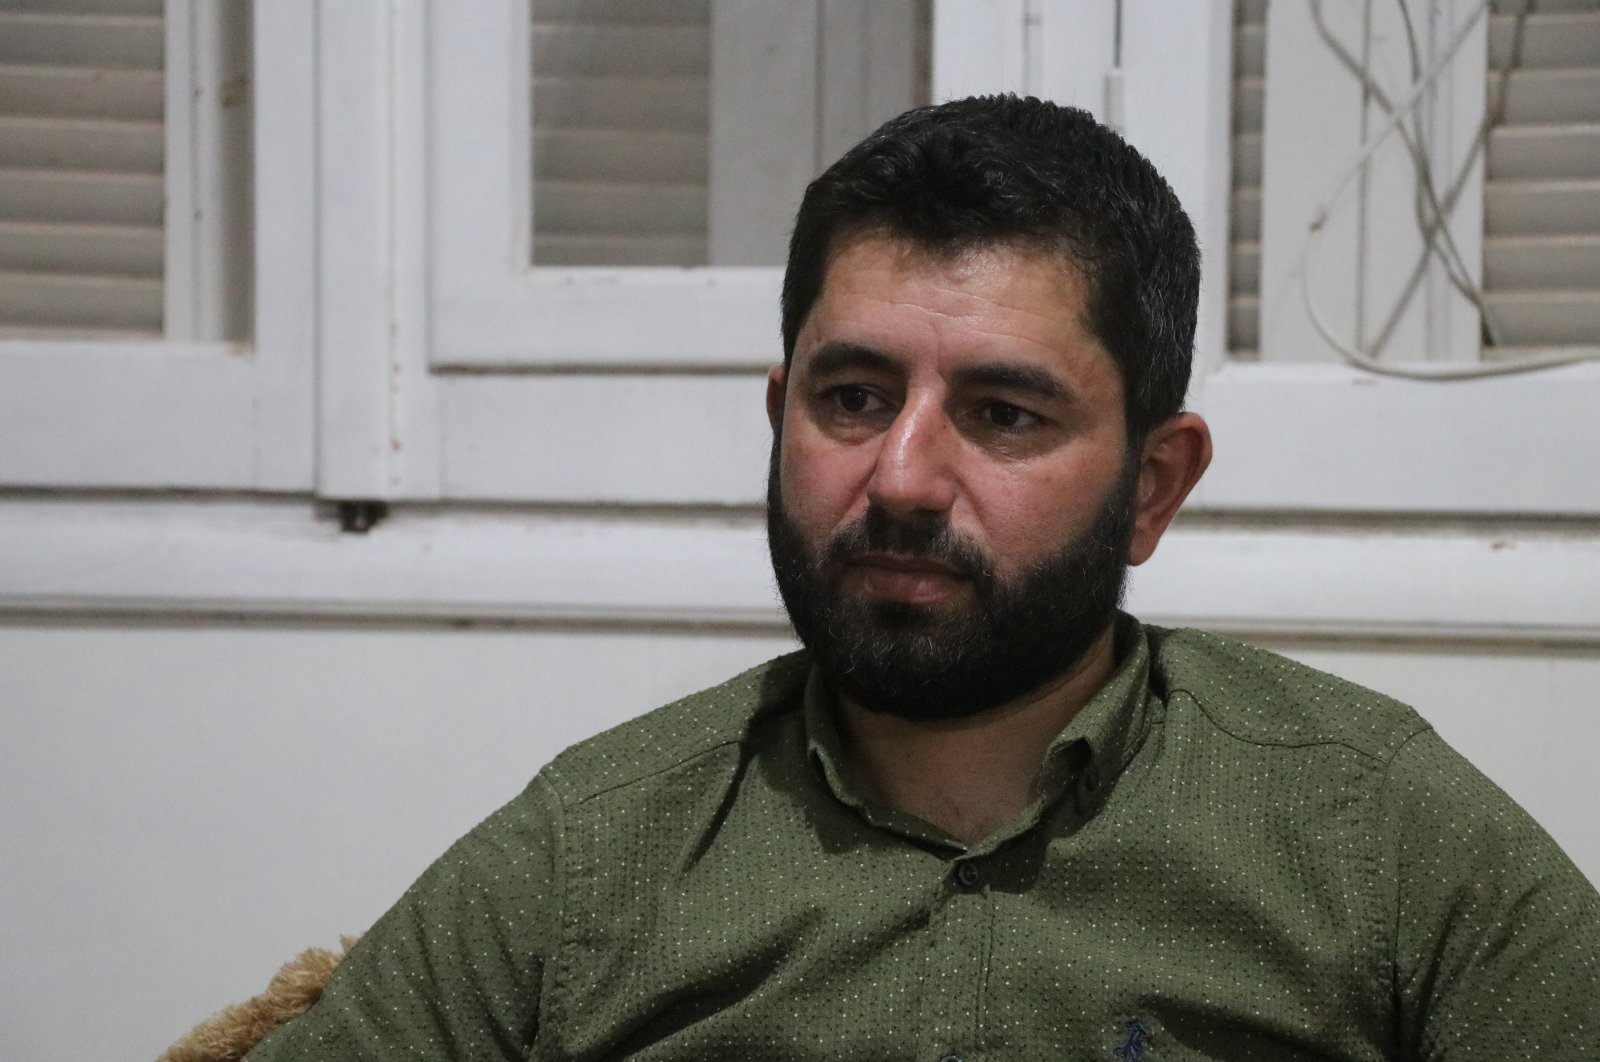 Ali Khatip, a lawyer and a member of the Syrian National Army (SNA), speaks to Anadolu Agency (AA) on his experience in Syrian regime prisons, Idlib, July 27, 2020. (AA)